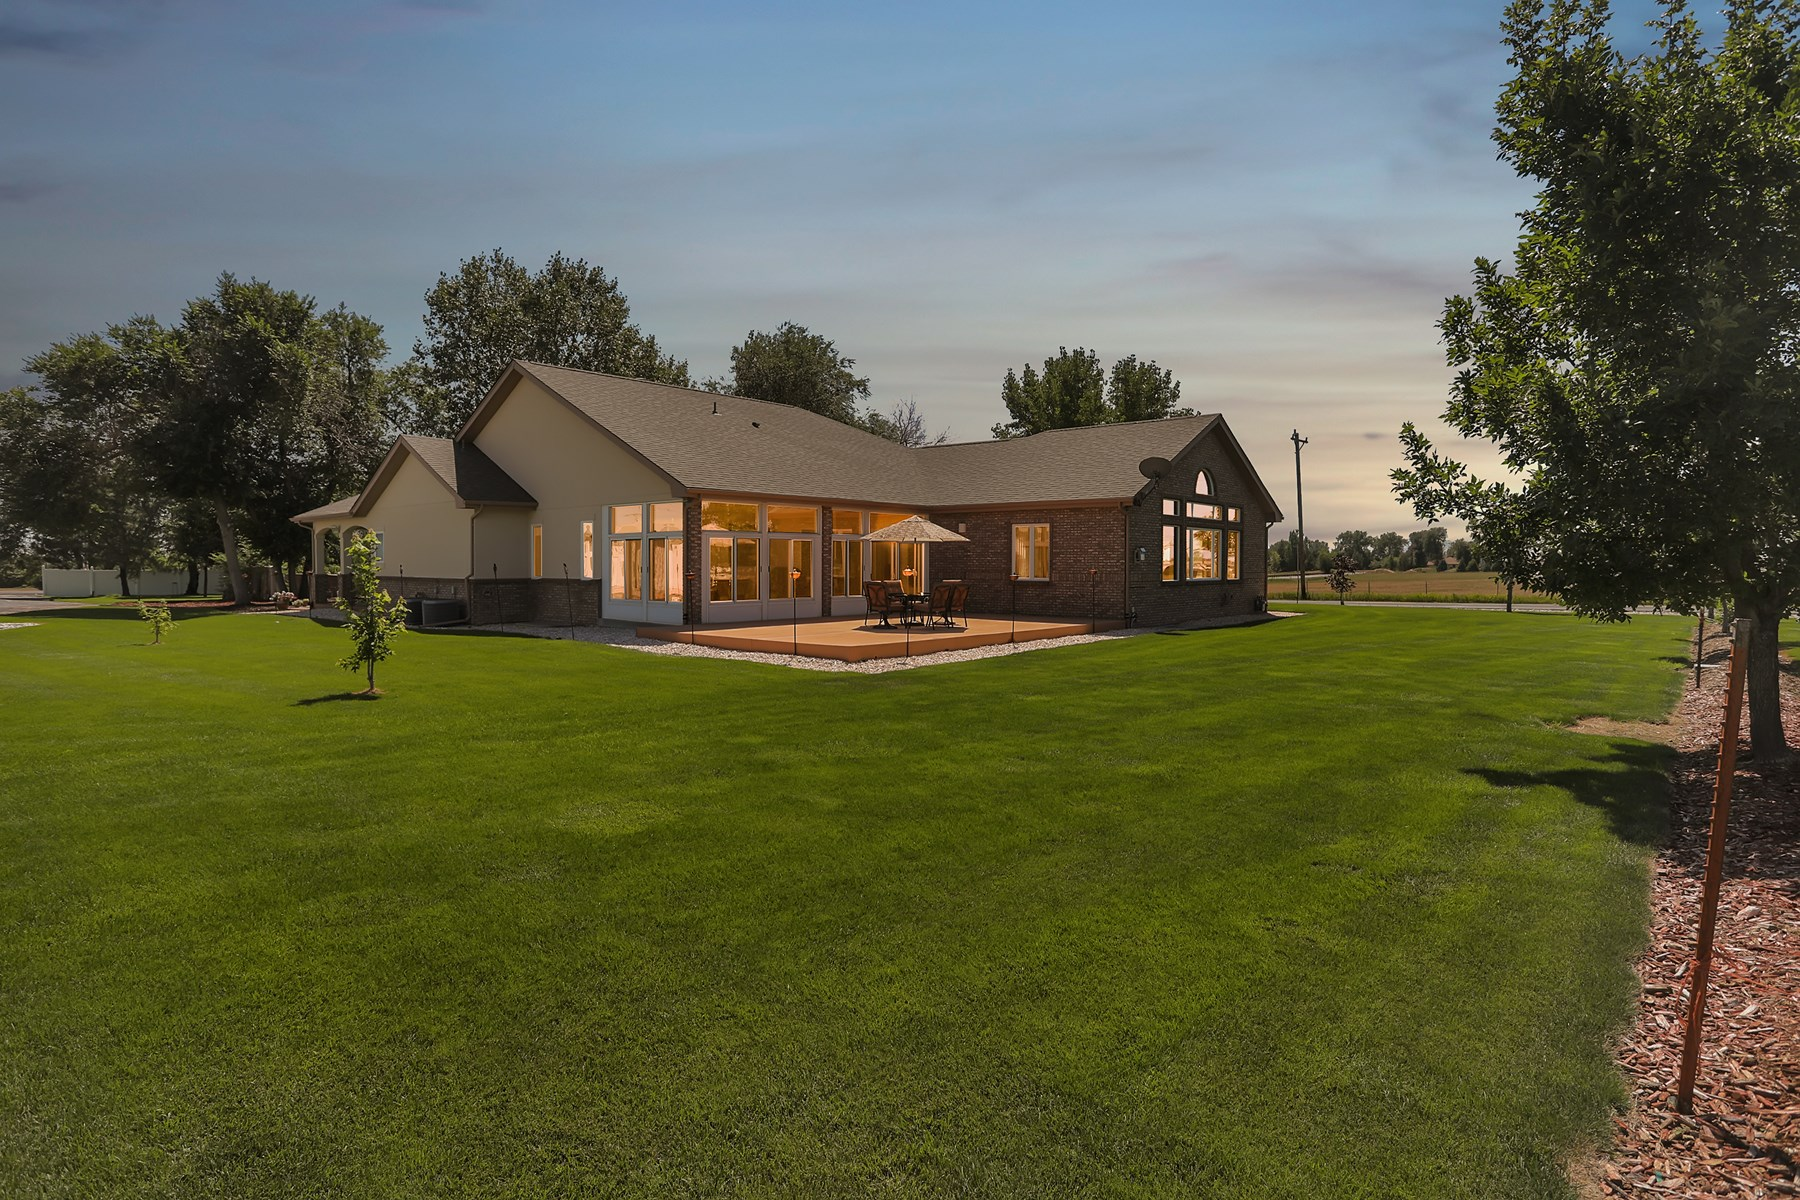 Colorado Hobby Farm For Sale, Boulder County, Longmont